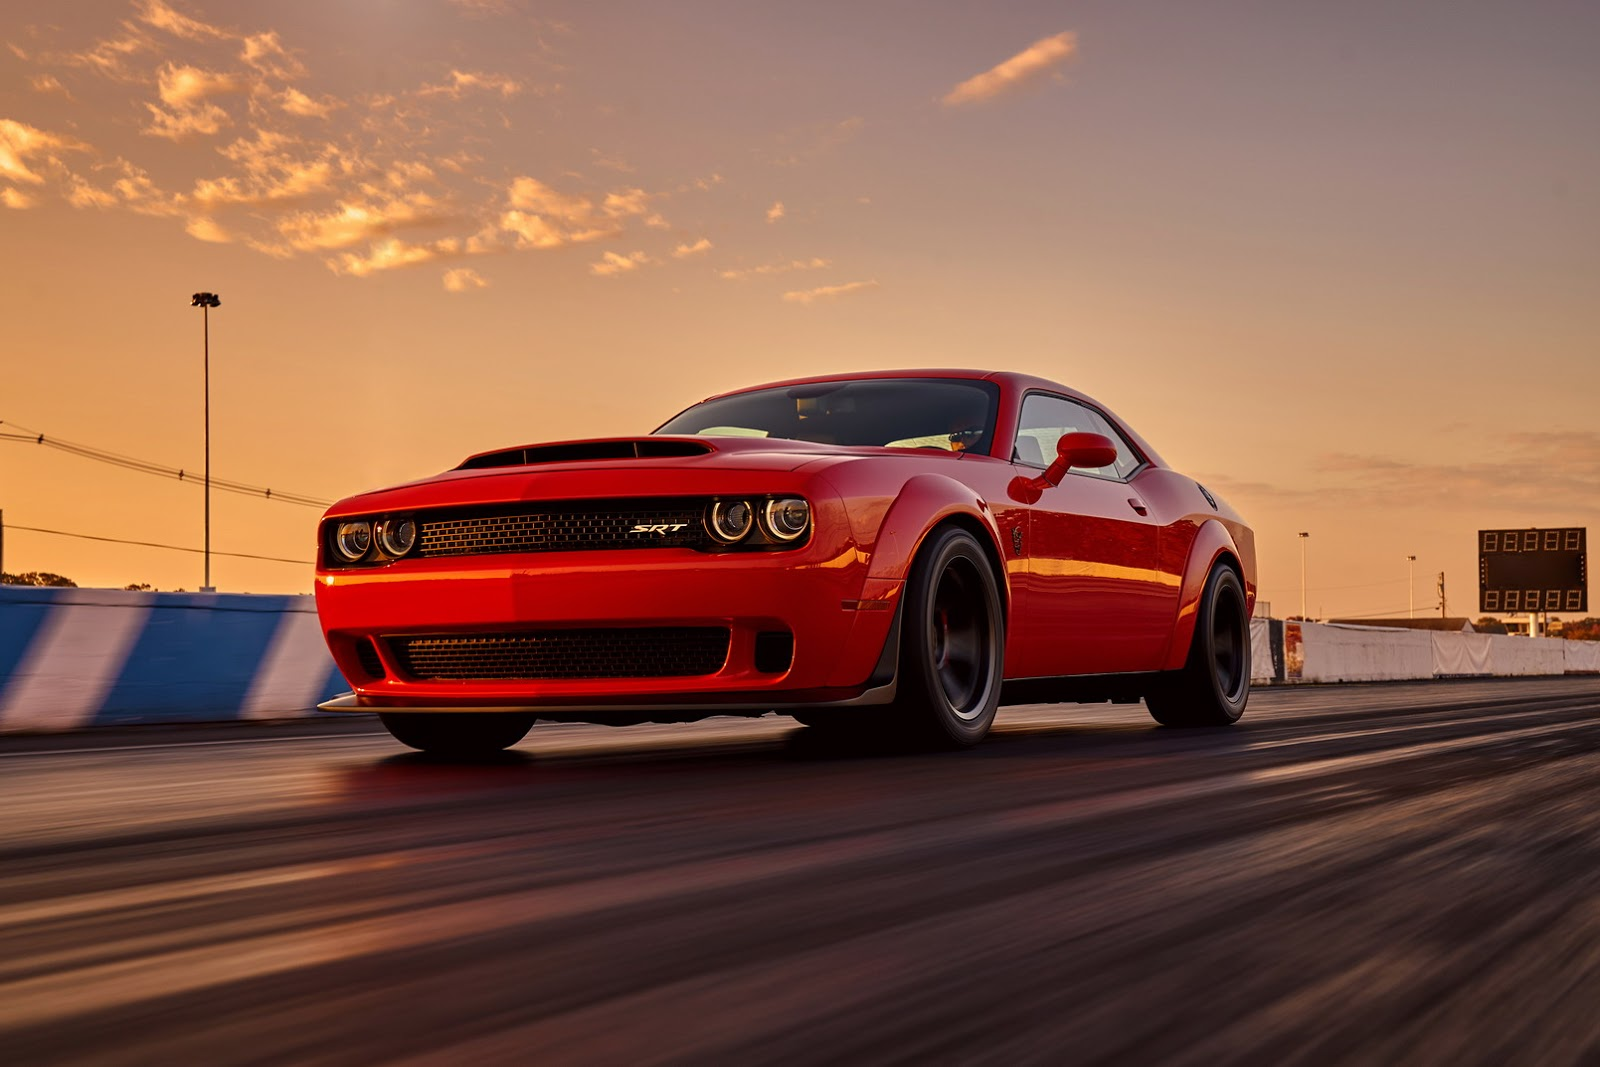 dodge challenger srt8 392 hd wallpapers autoevolution. Black Bedroom Furniture Sets. Home Design Ideas